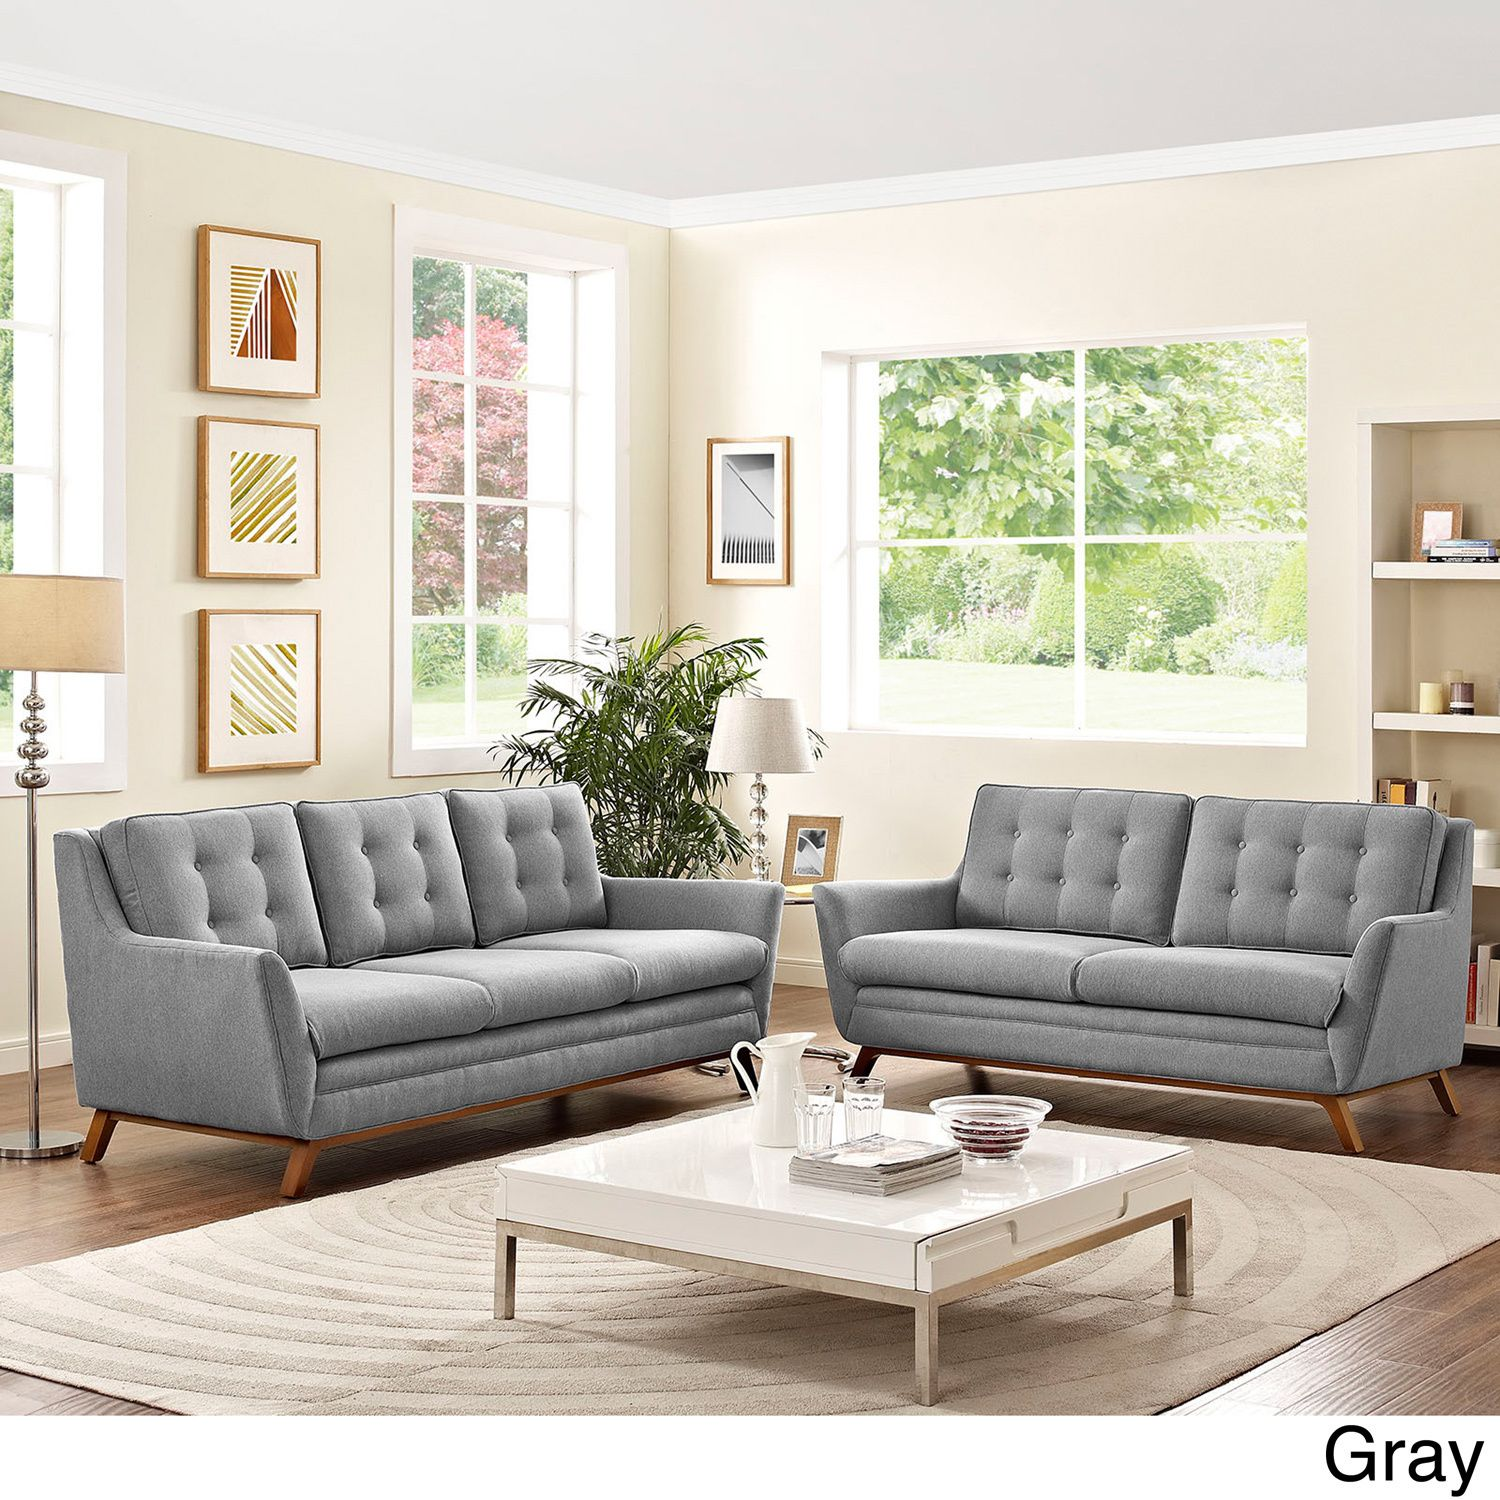 Modway Beguile Tufted Fabric Sofa and Loveseat Set (Gray ...